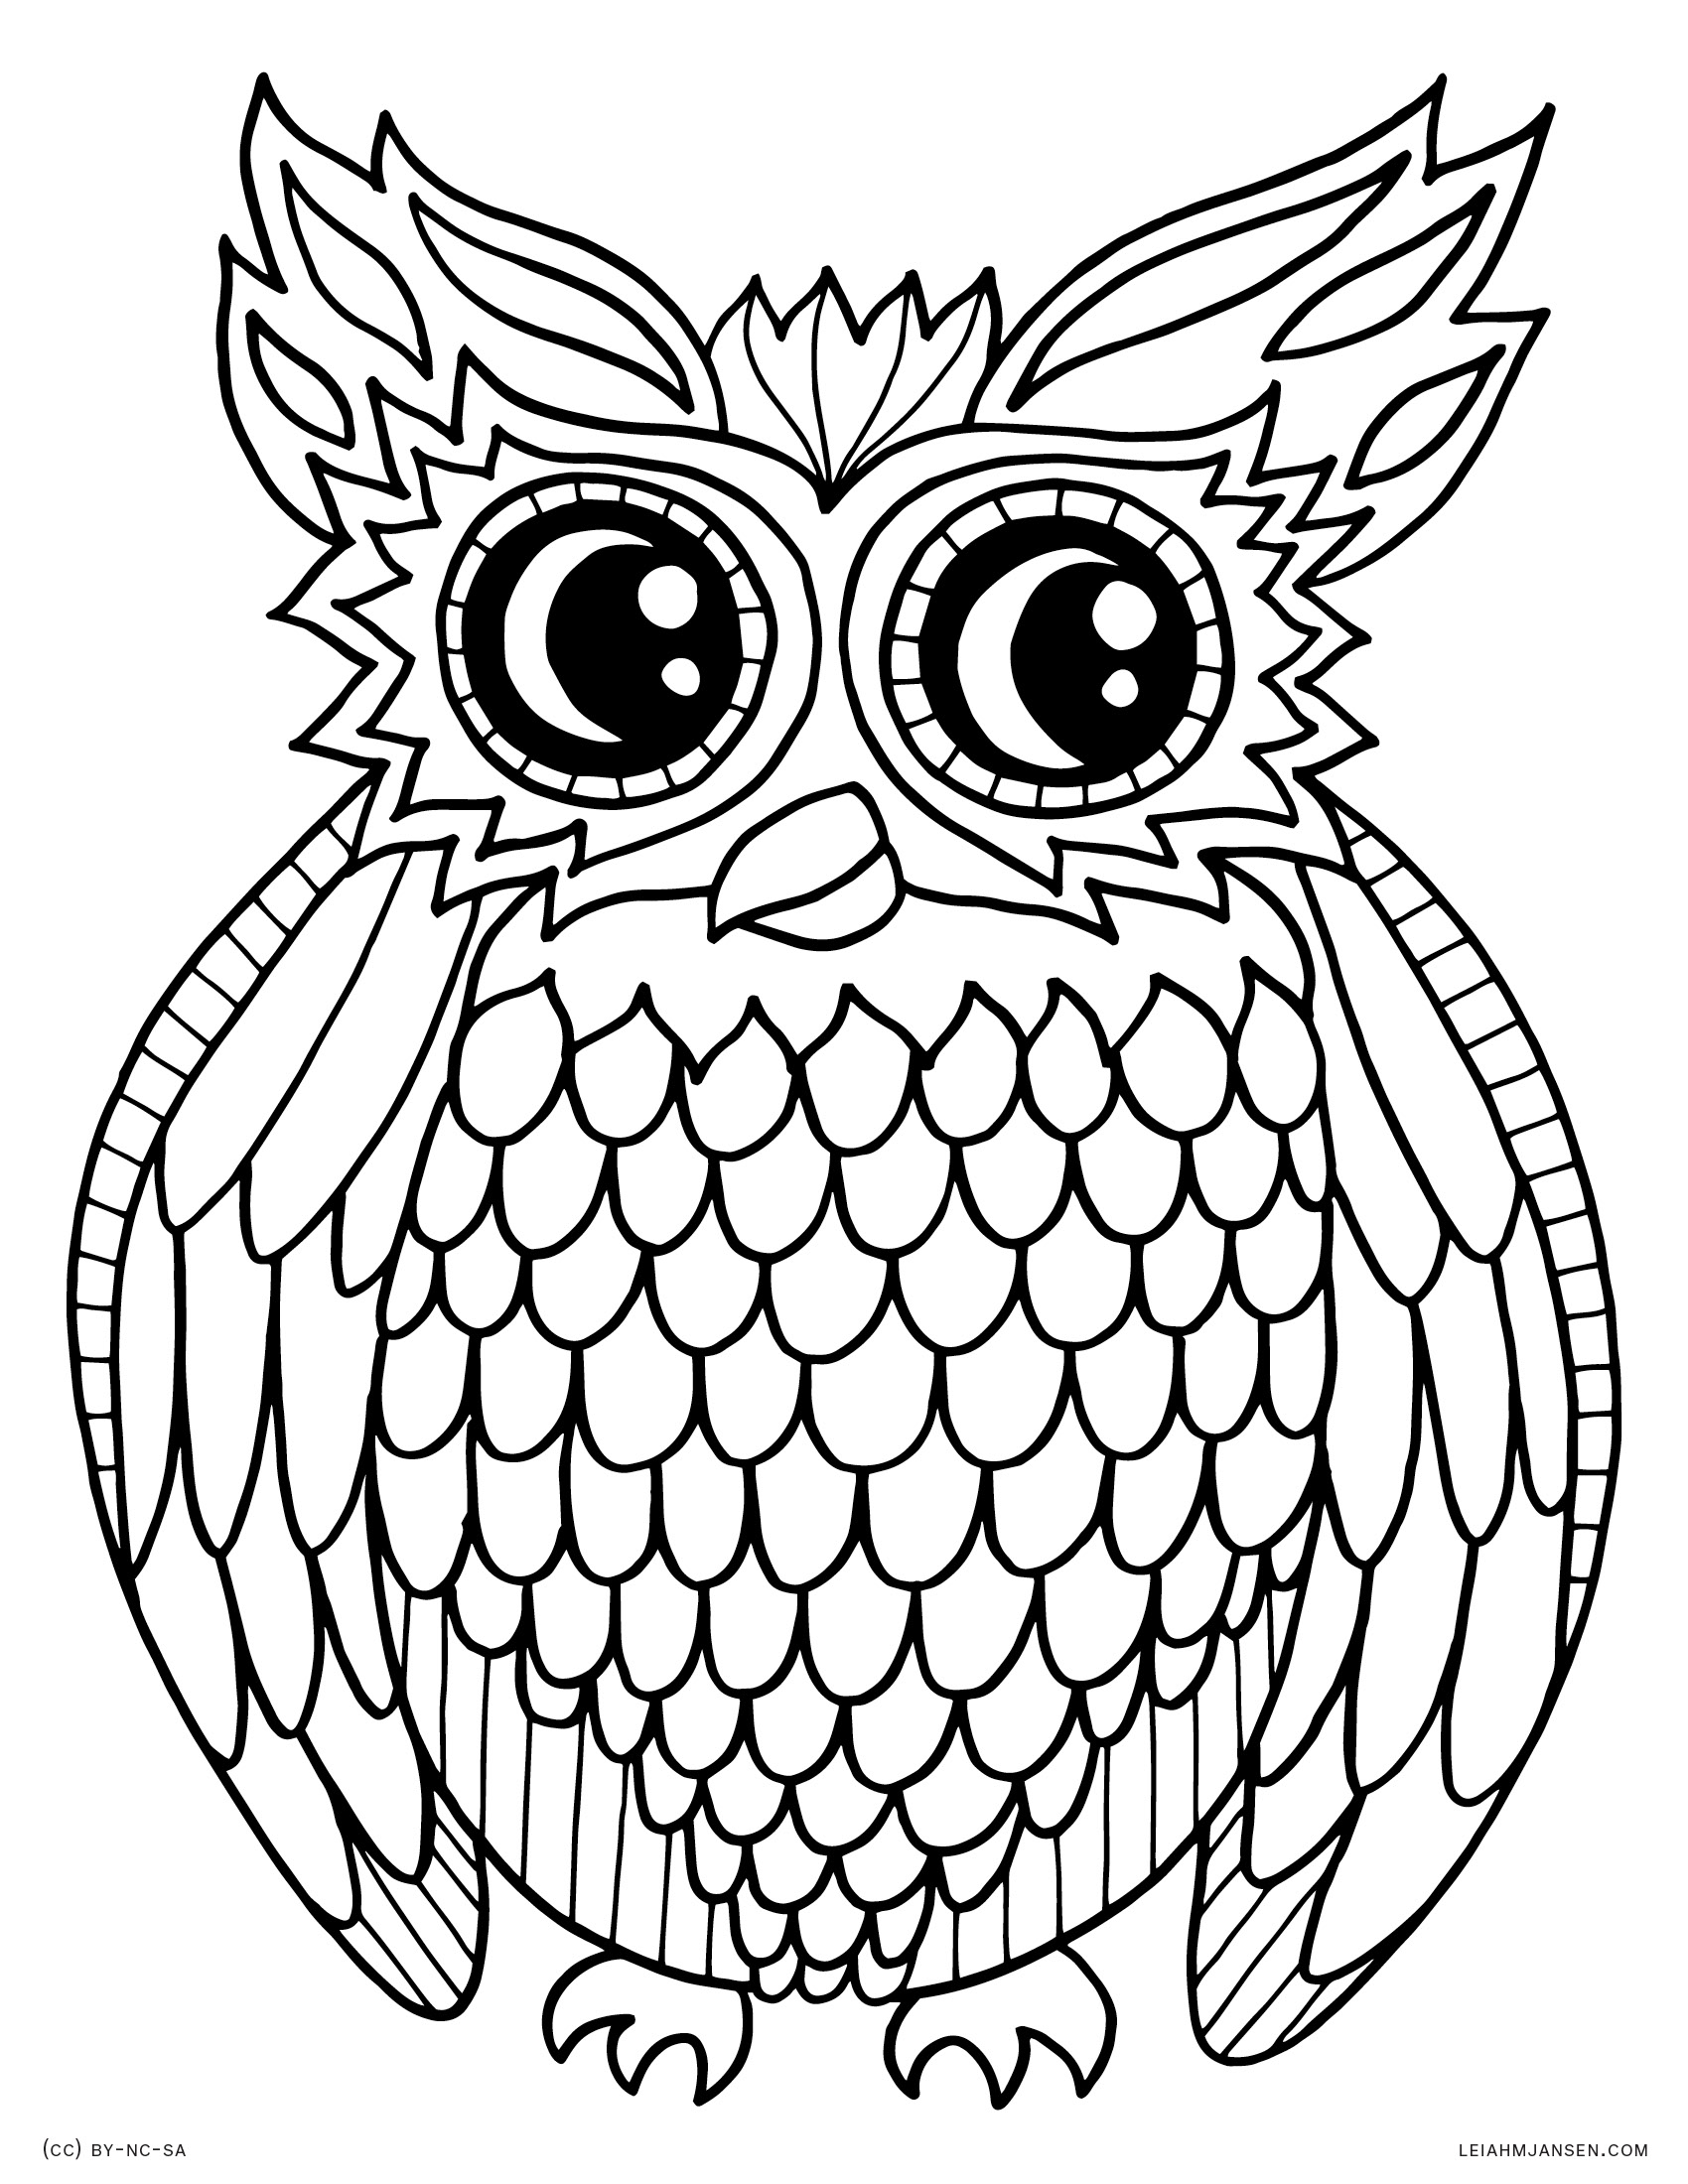 printable pictures of owls lost in paper scraps free digital owl day 2 owls printable of pictures